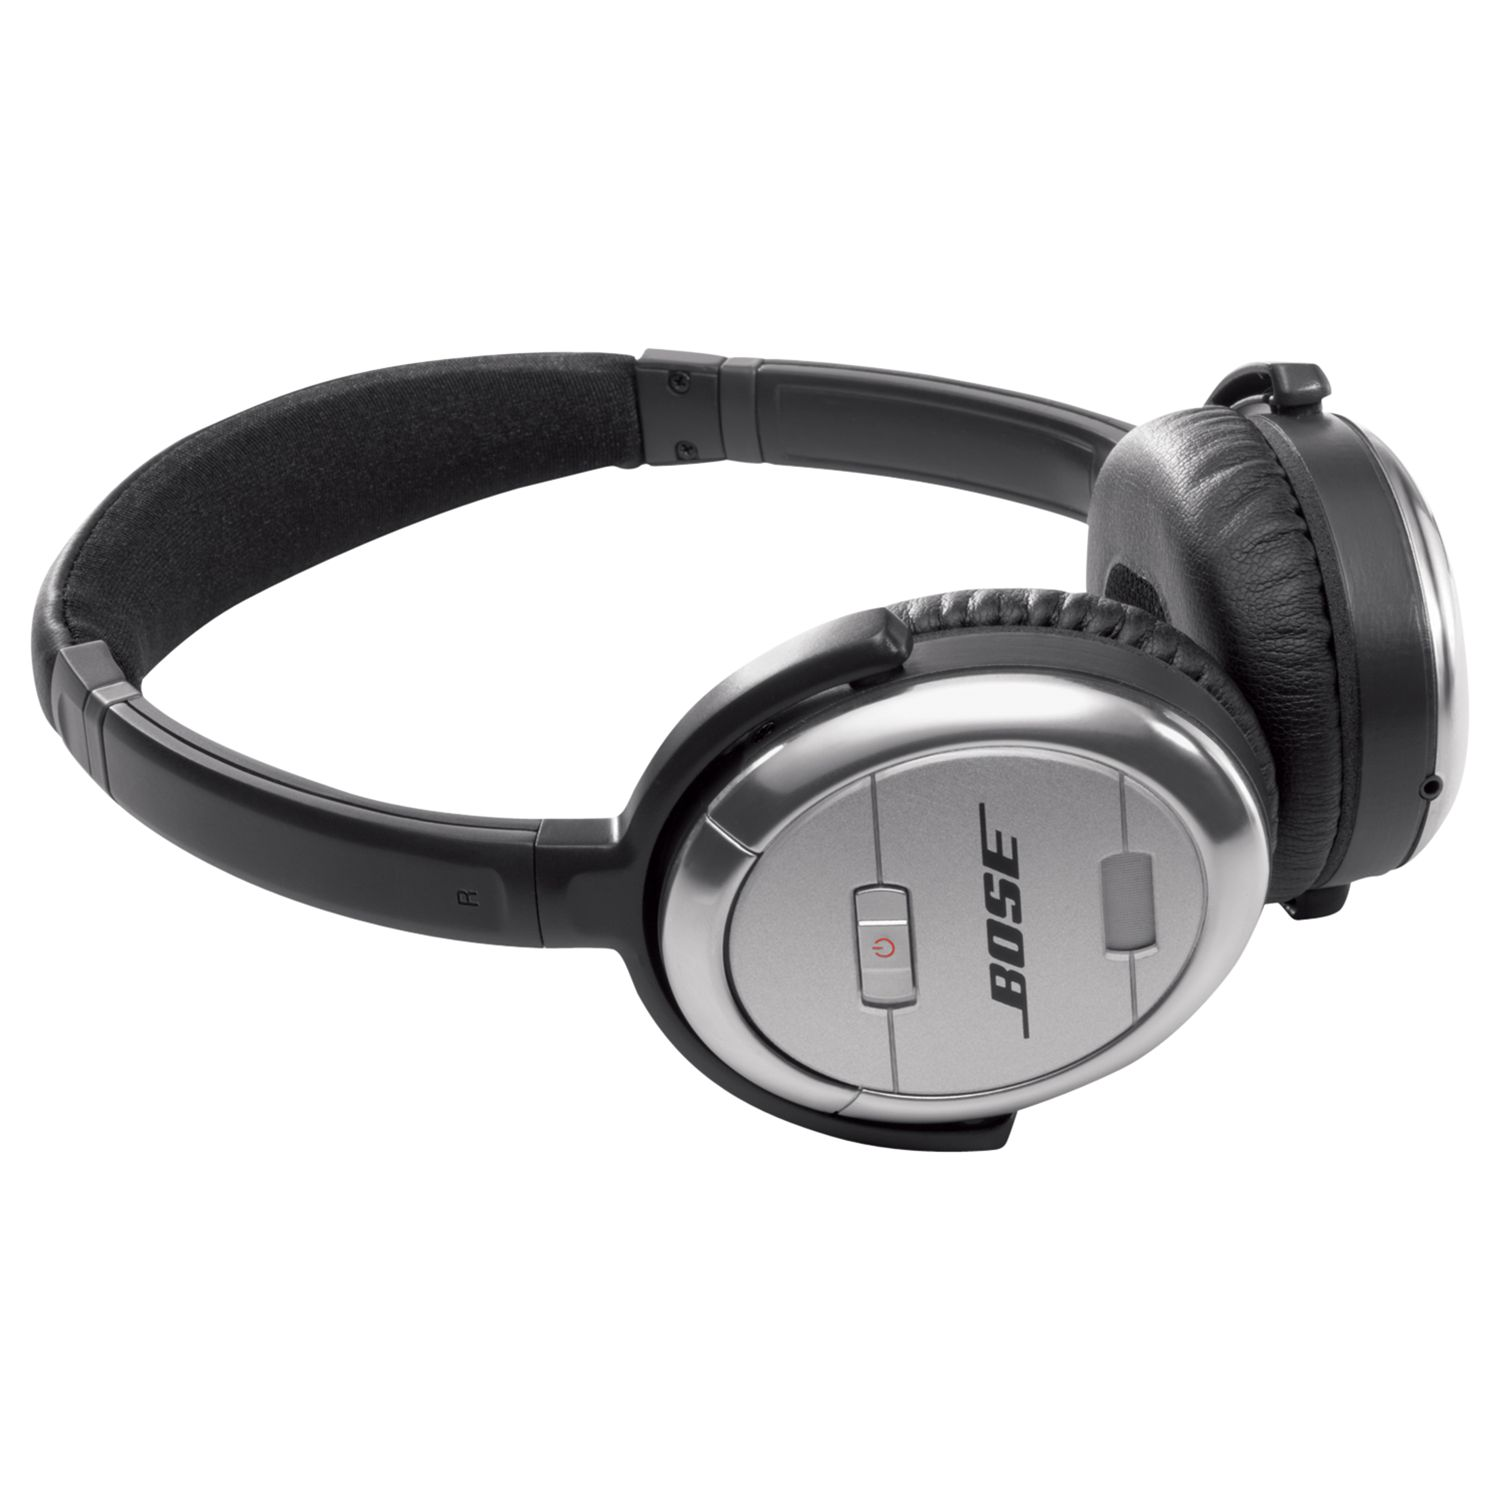 Bose Noise Cancelling Bose Quietcomfort 3 Shop For Cheap And Save Online